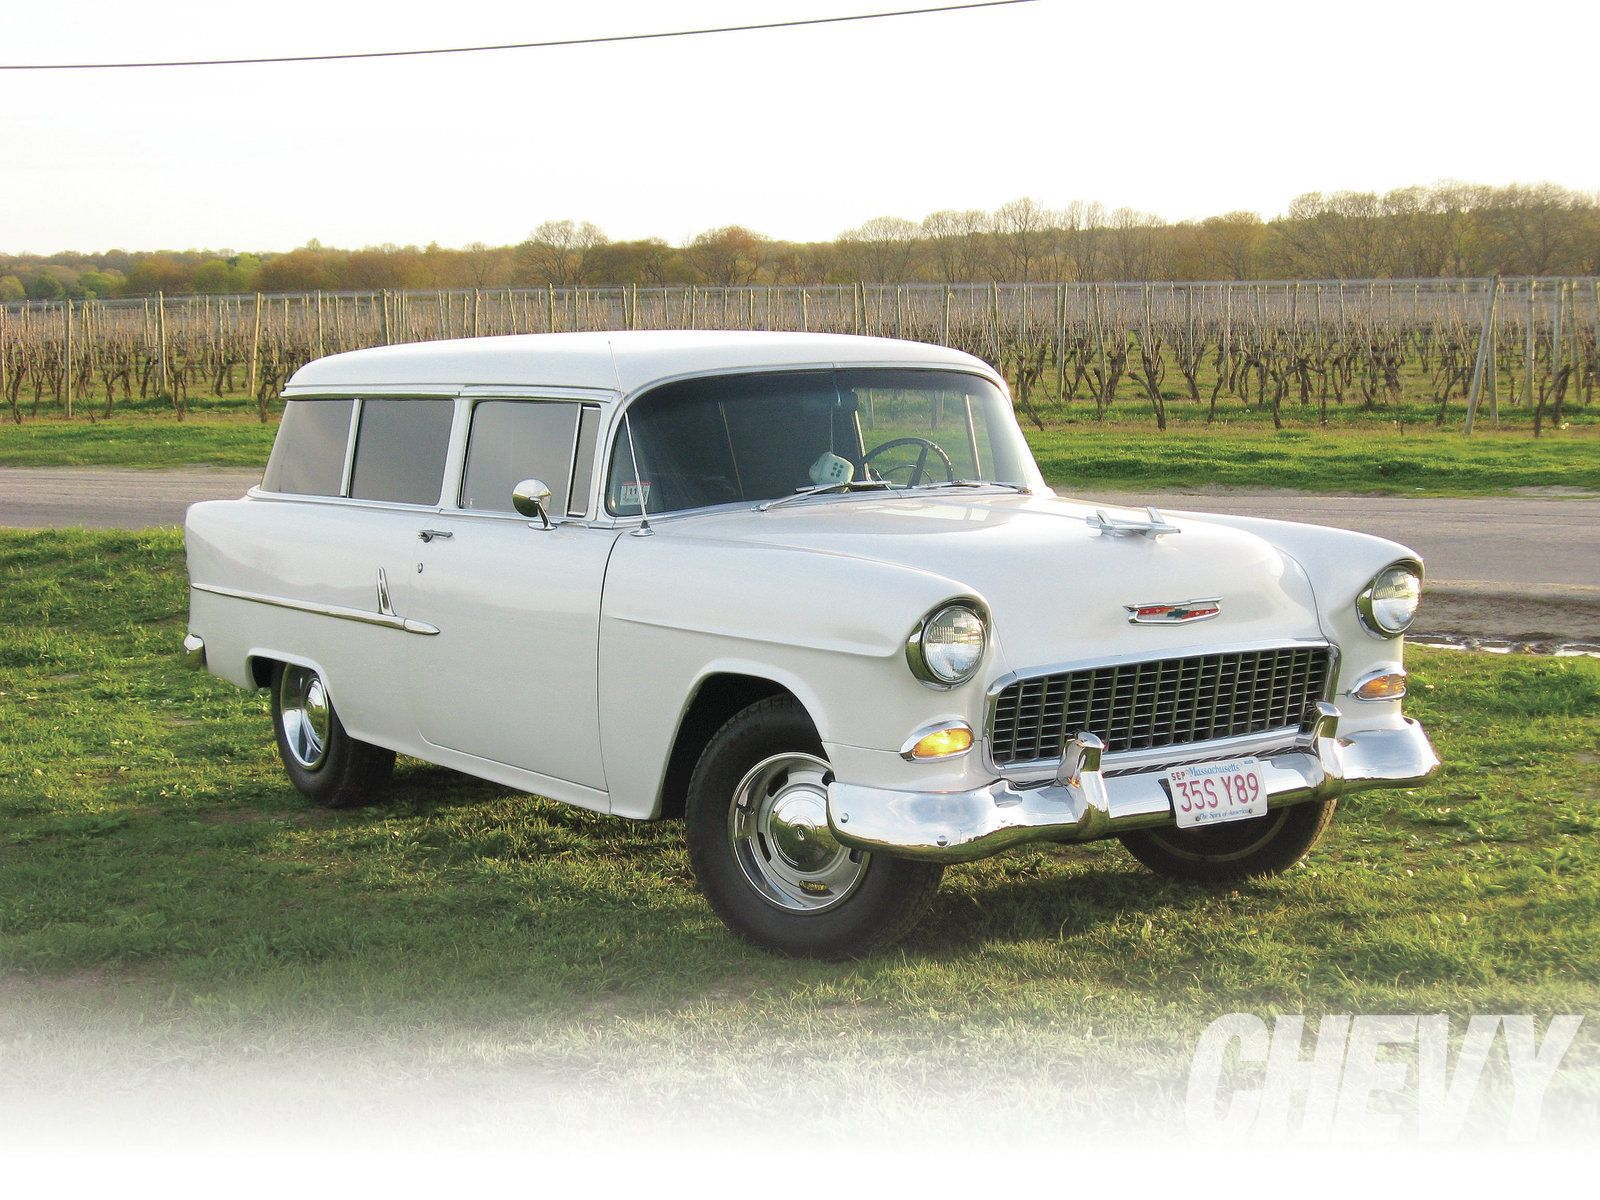 1955 chevrolet handyman 2 door wagon street rod - 55 Chevy 2 Door Wagon